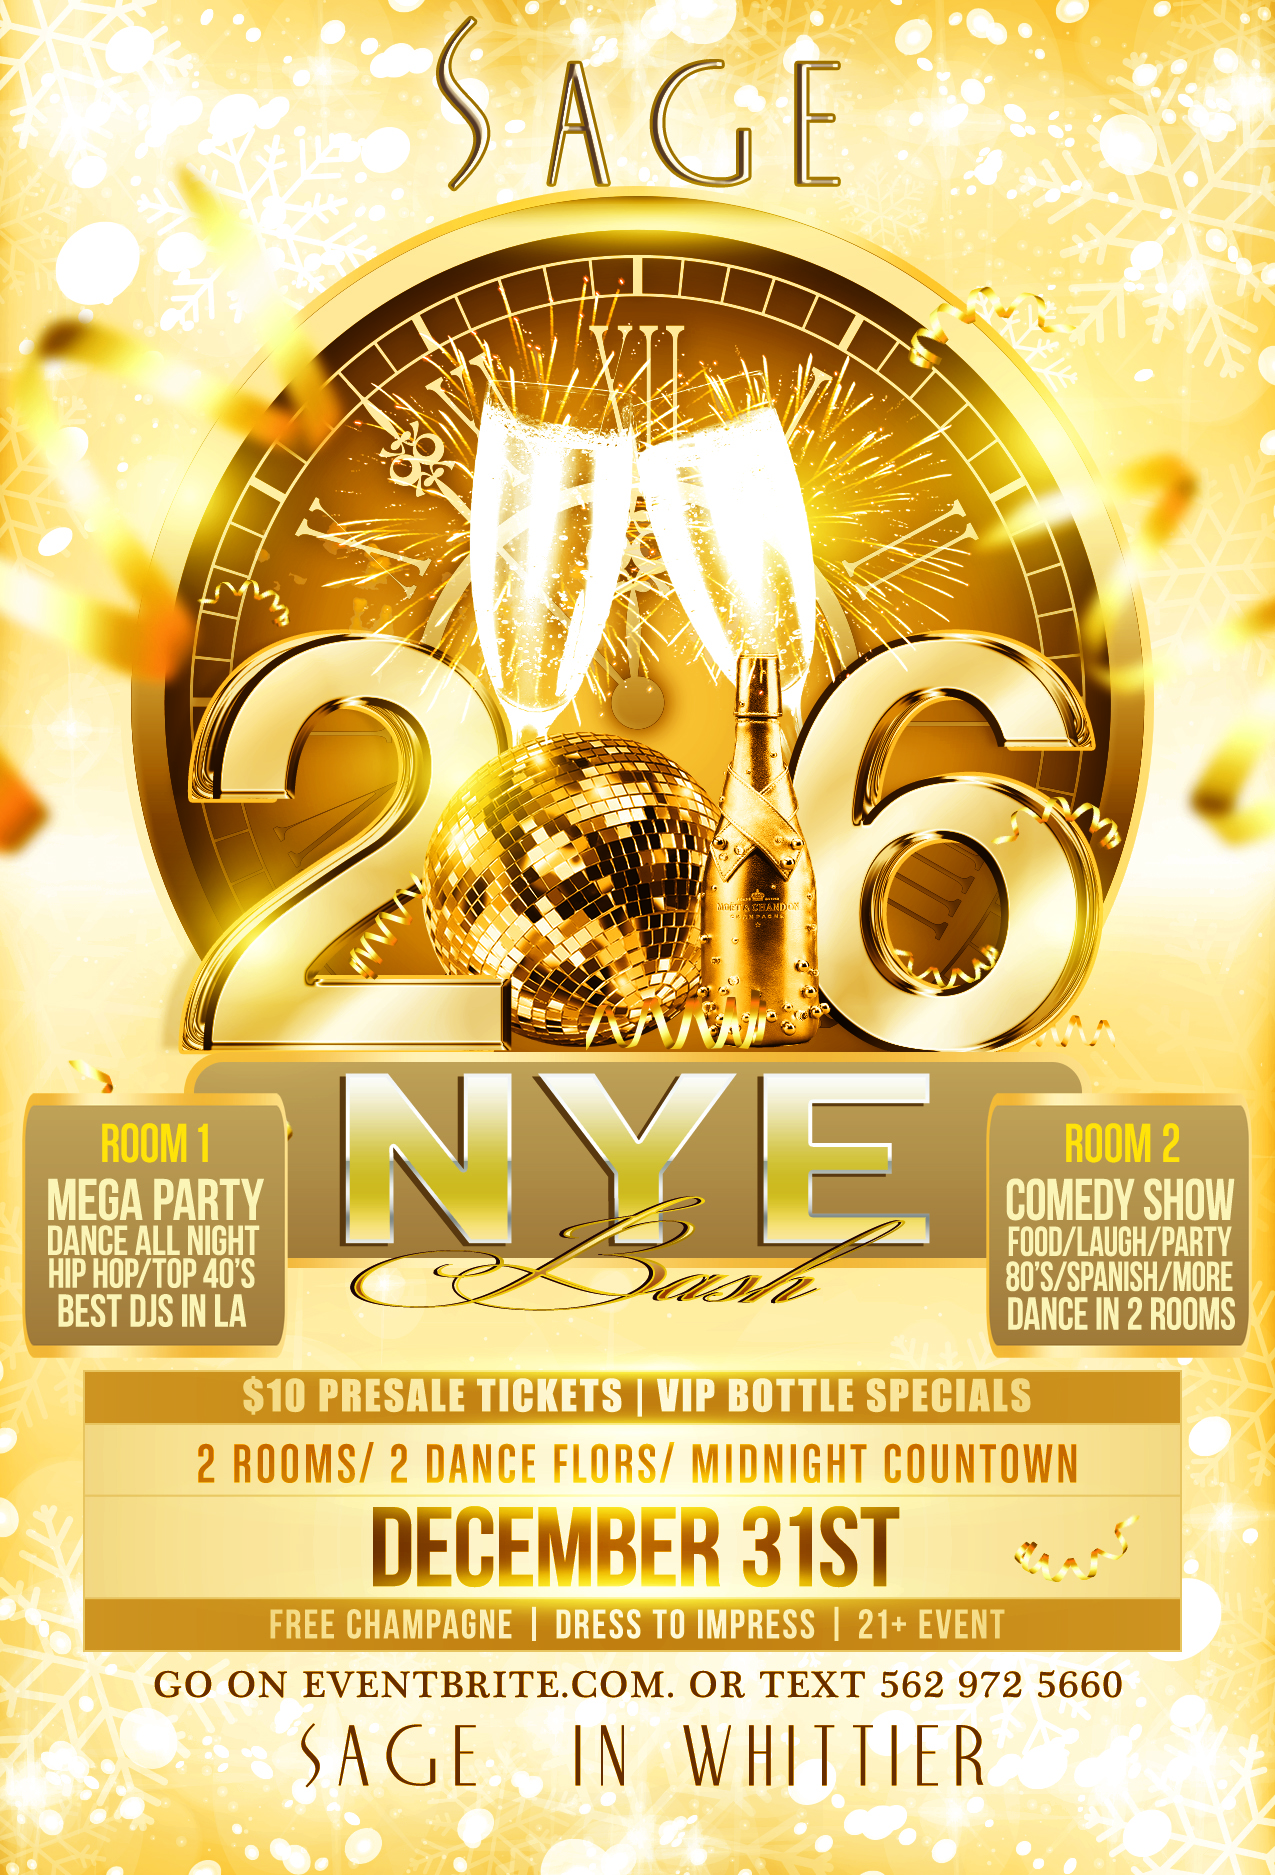 Sage Restaurant And Lounge Invites You To Our Annual New Years Eve Bash We Offer 3 Rooms With 2 Dance Floors The Best DJs In LA Playing All Your Hip